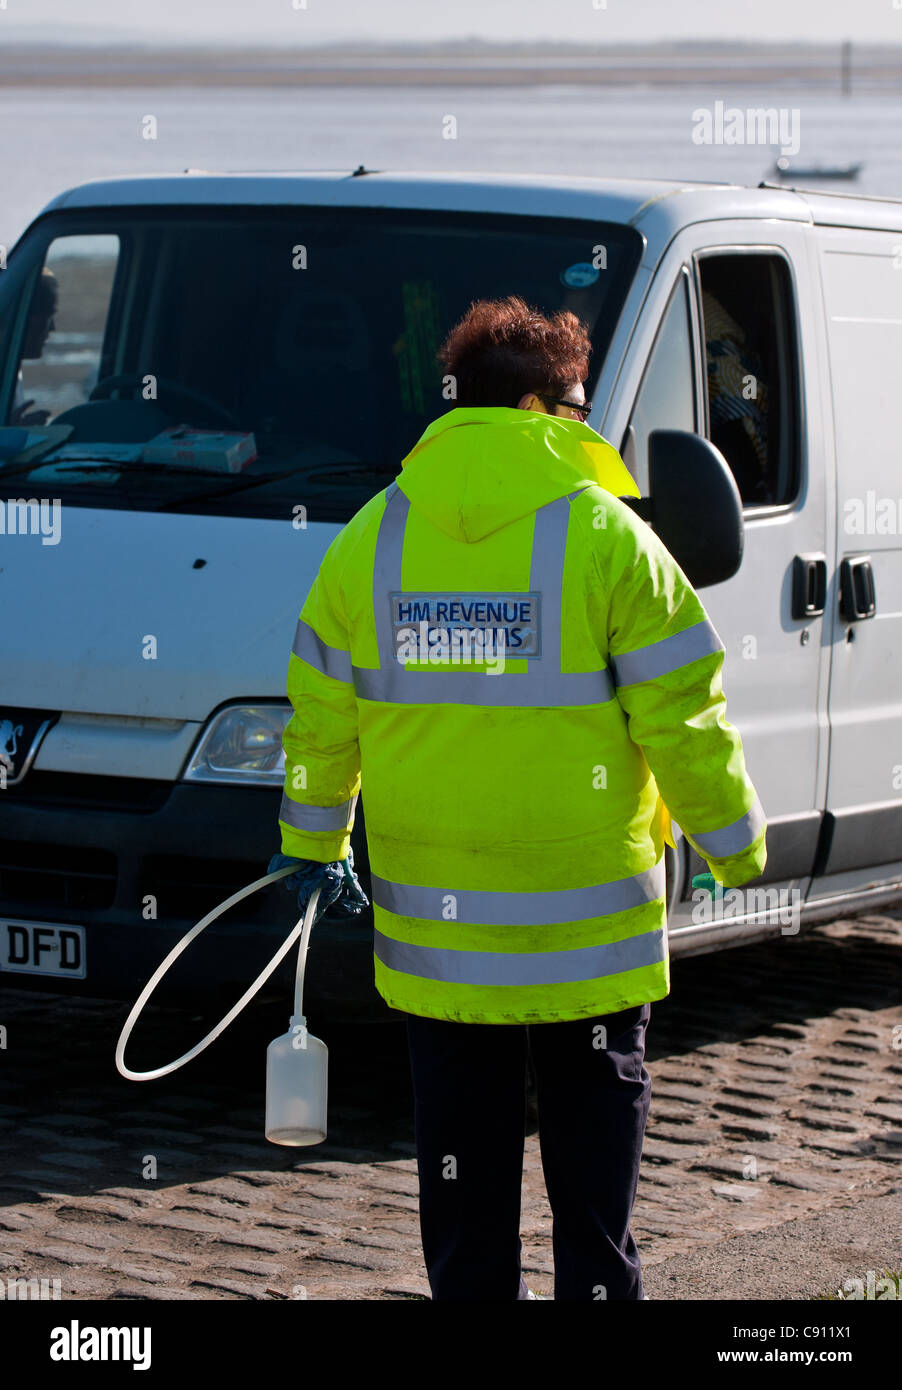 An officer from HM Revenue & Customs checking fuel in a van. - Stock Image